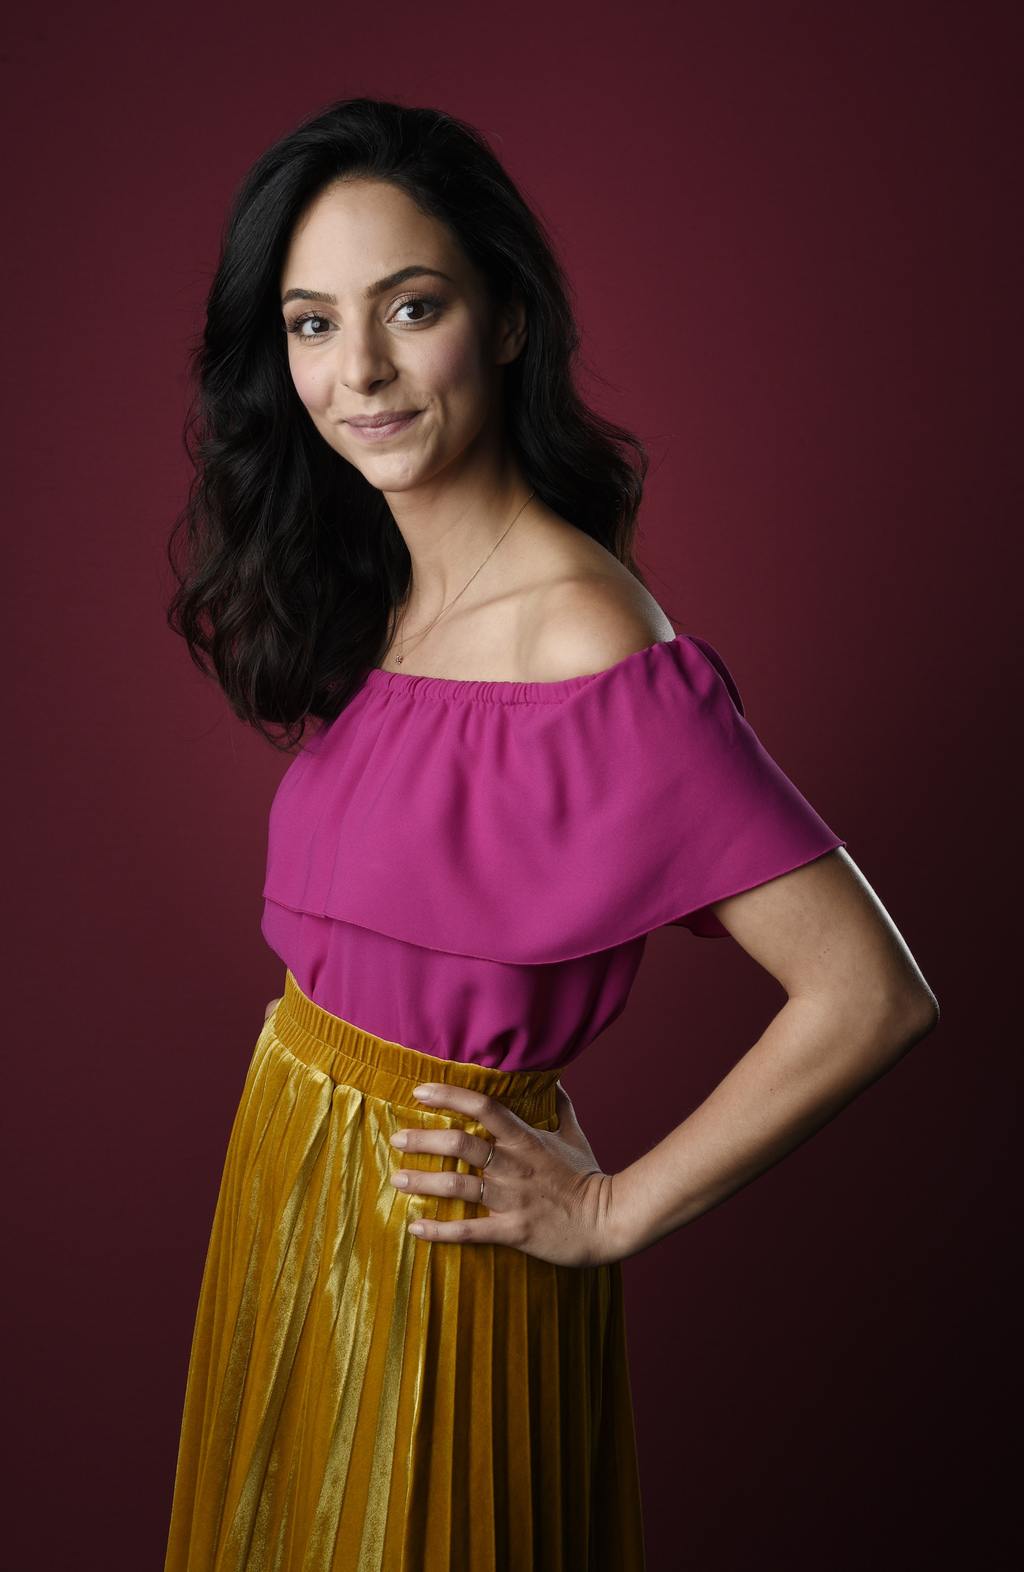 """Tala Ashe, a cast member in the CW series """"DC's Legends of Tomorrow,"""" poses for a portrait during the 2017 Television Critics Association Summer Press..."""